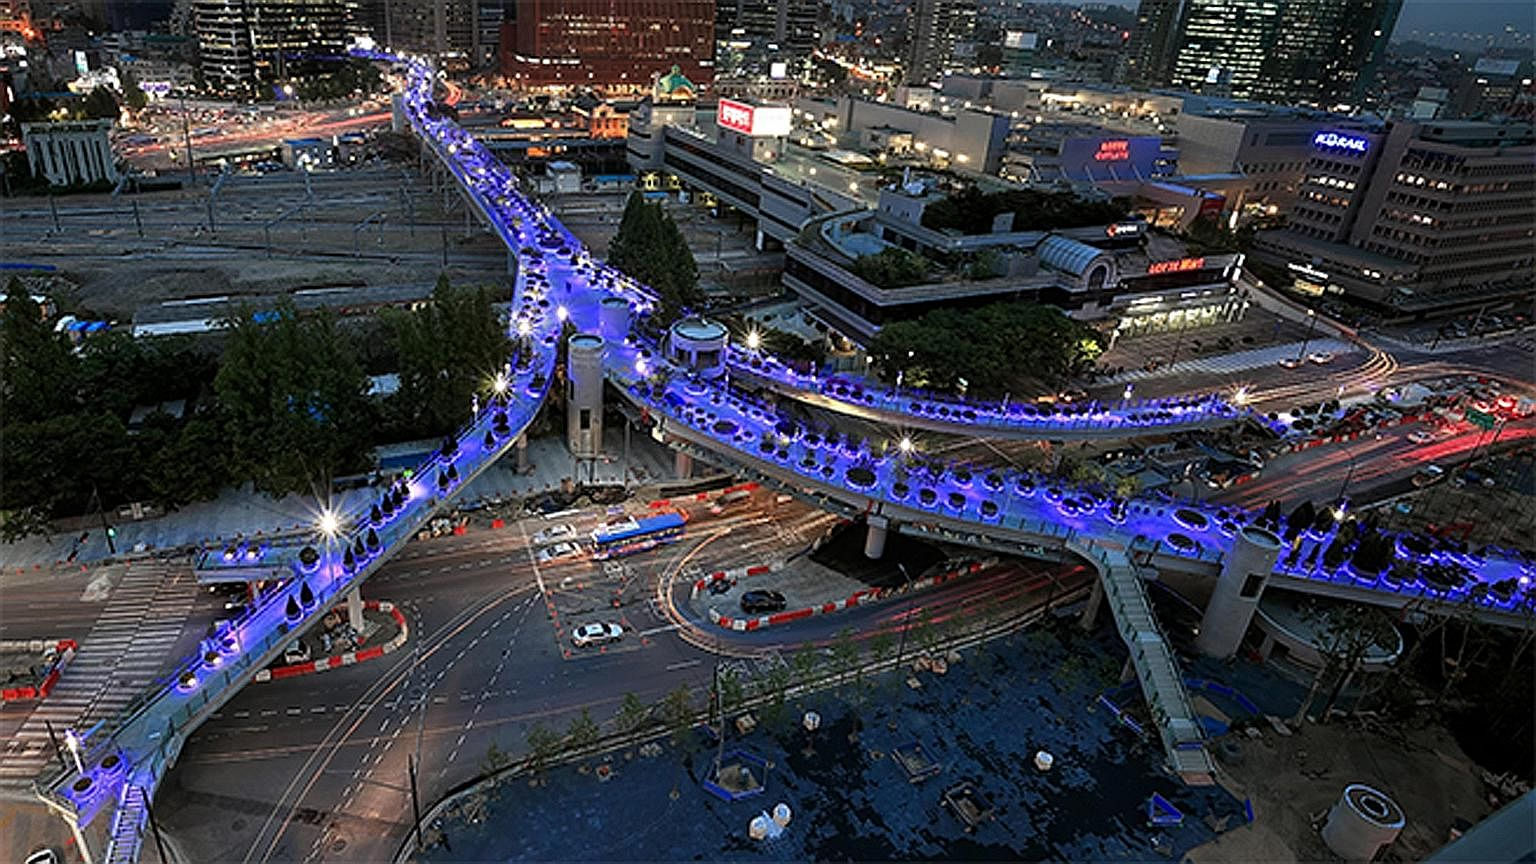 """Seoullo 7017, which opens today, is South Korea's own version of New York's High Line sky park. The brainchild of two-term Seoul mayor Park Won Soon, the sky park is part of his bigger vision to make Seoul """"a great city for walking"""" and extend the gr"""